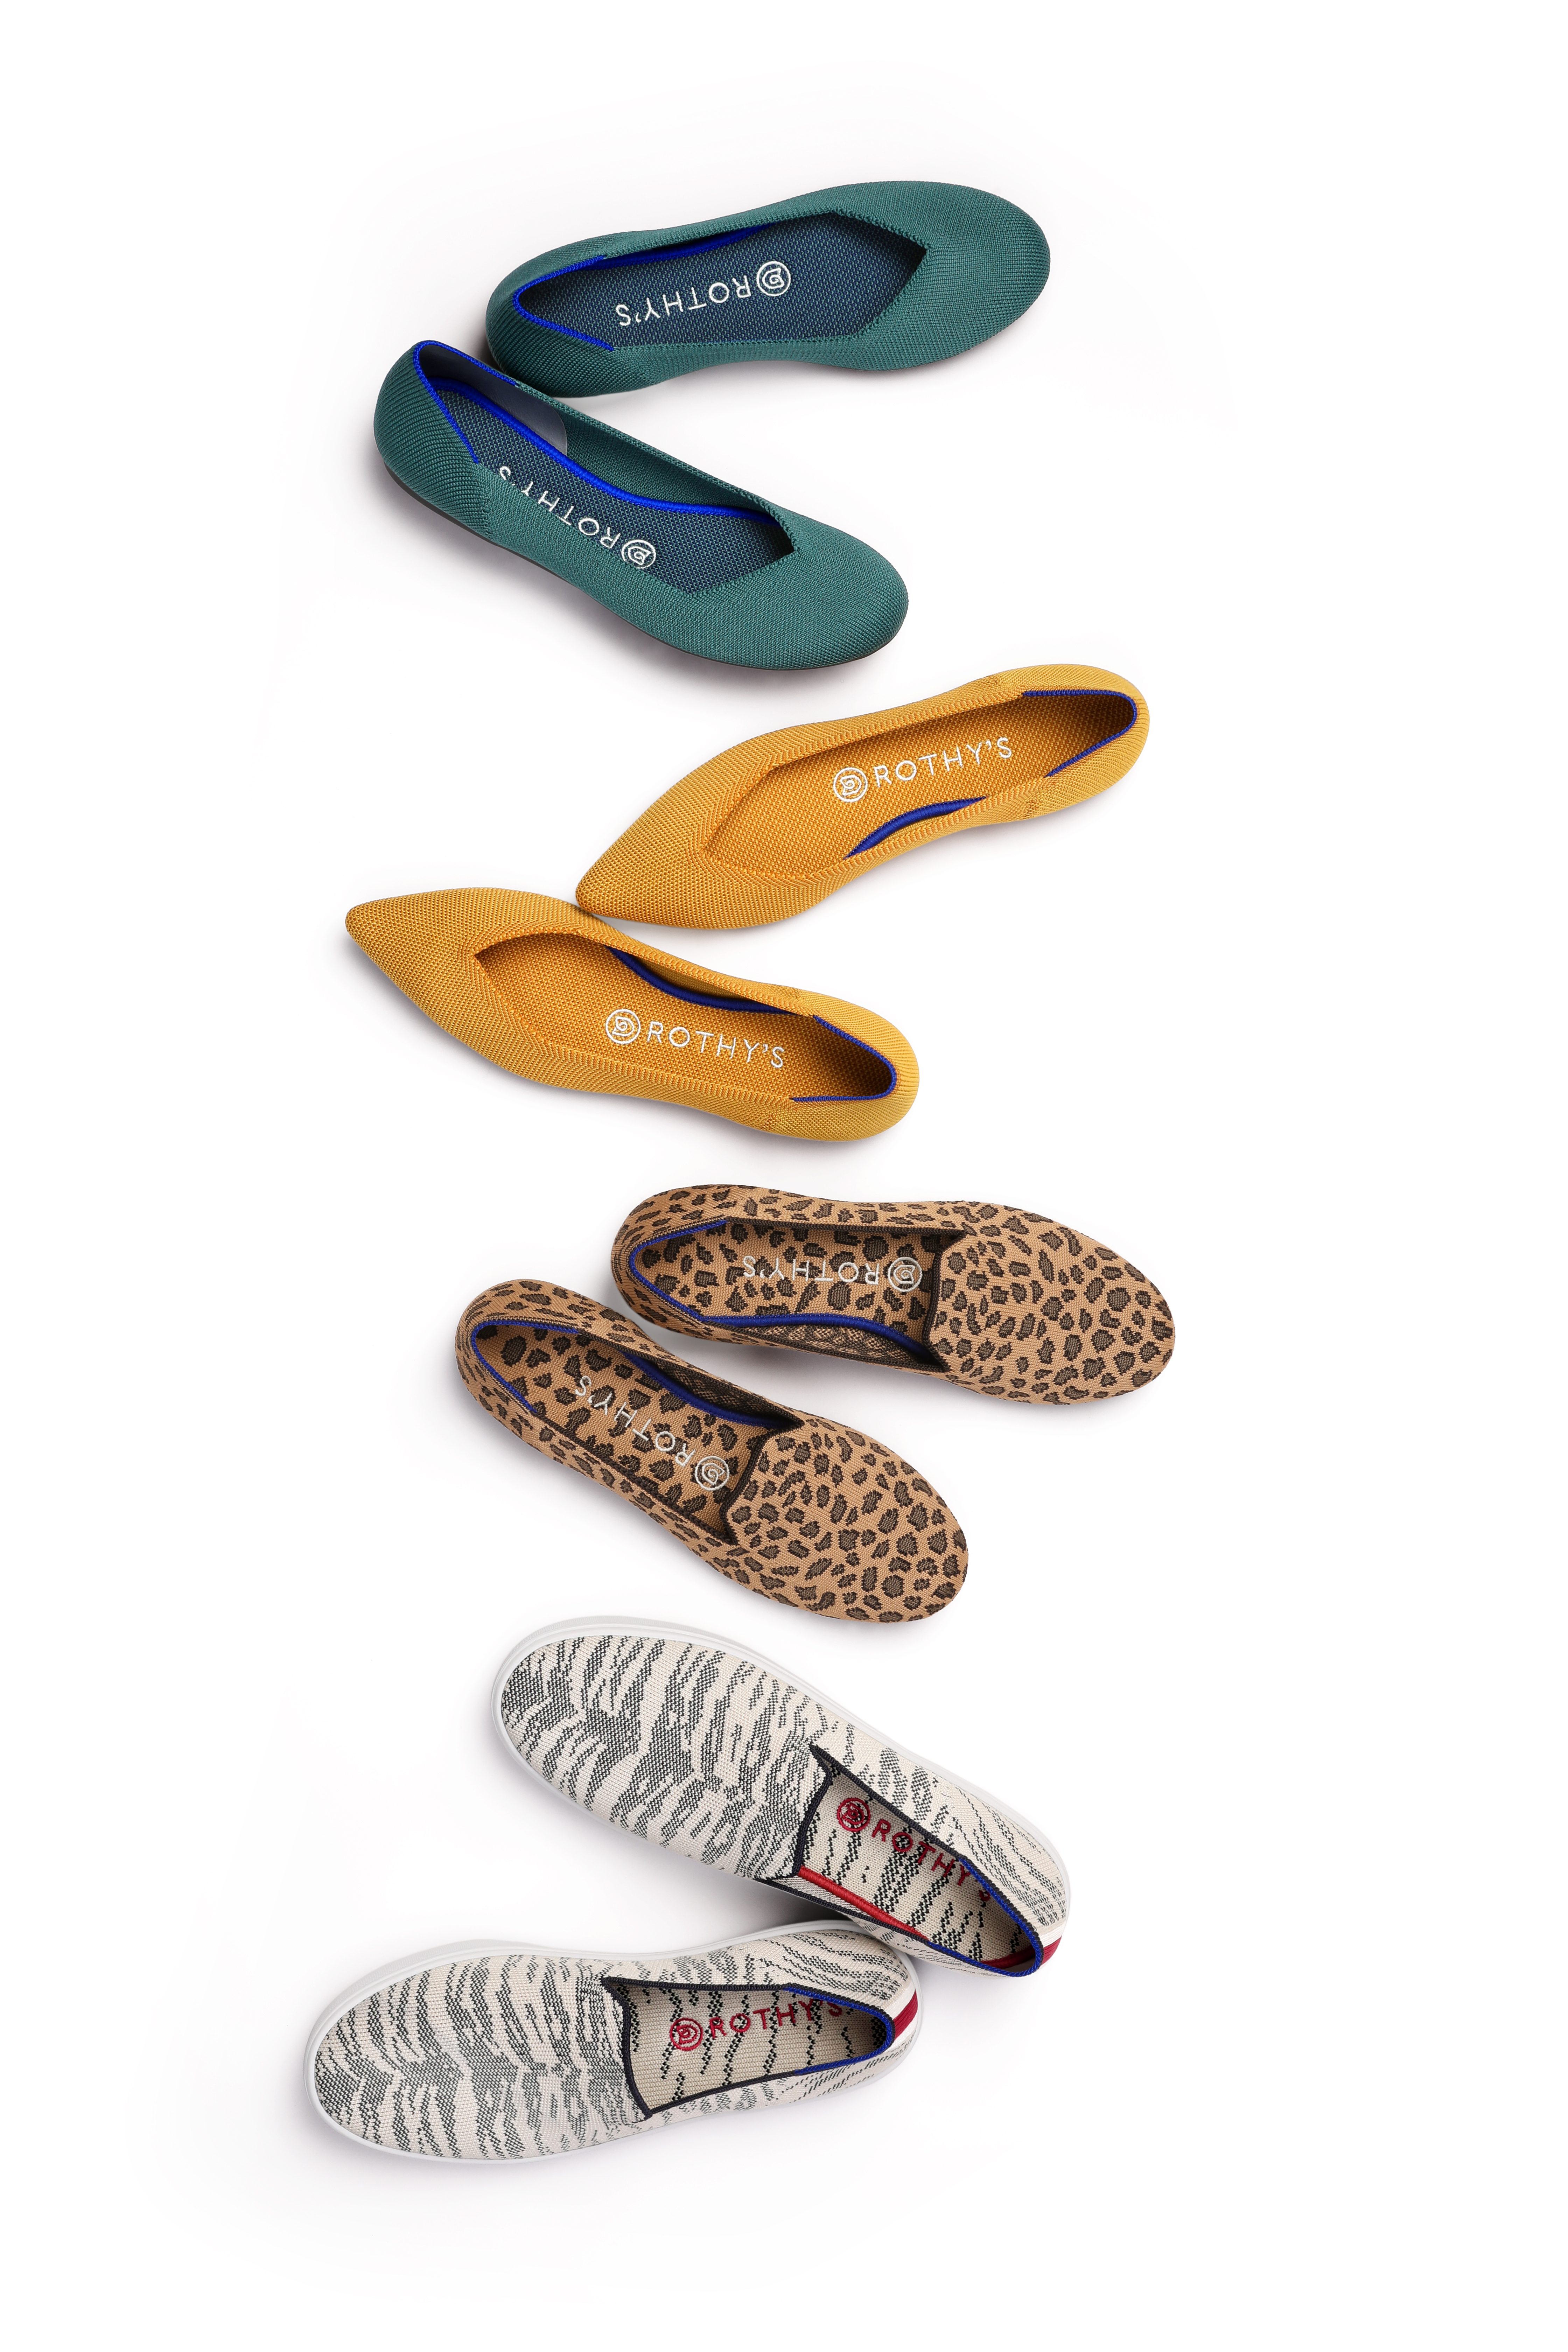 b12e6d8fef Rothy's: Washable, Woven Flats & Shoes Made from Recycled Plastic